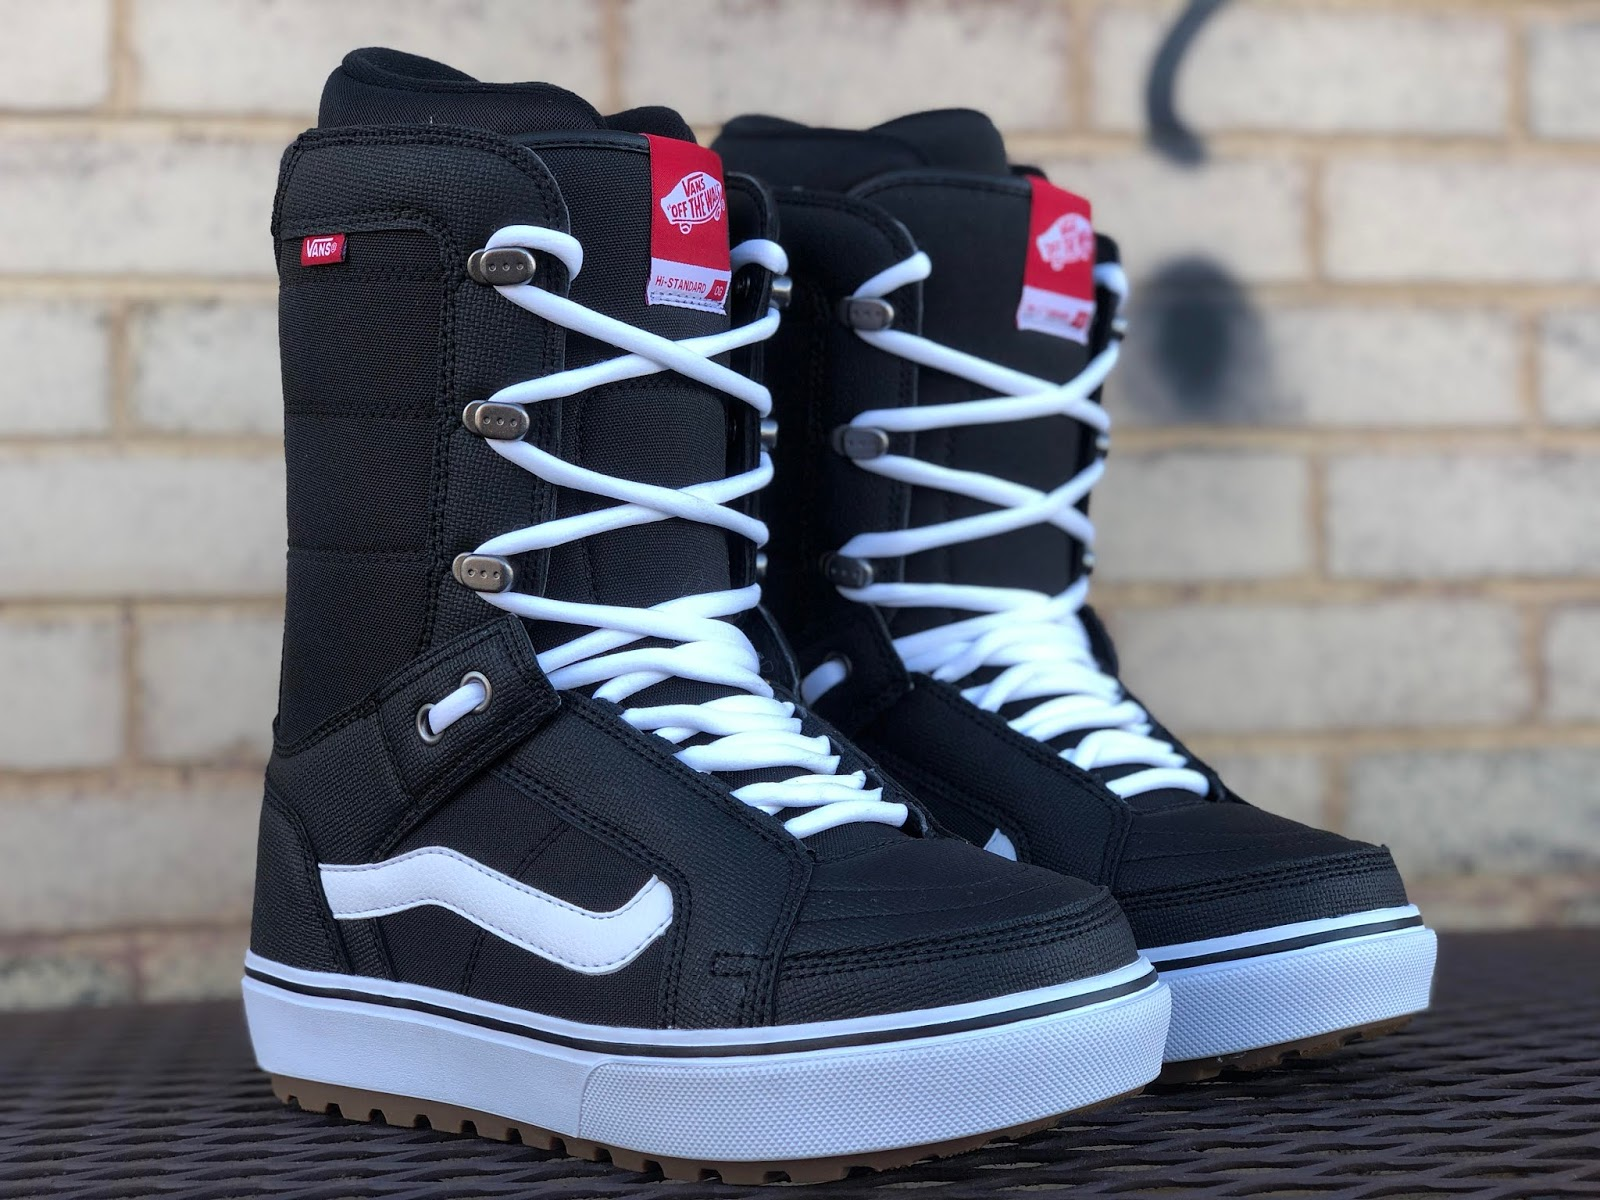 9ae774bc98fe The Instep Lace Lockout and Internal Web Harness keep your foot locked in.  Paired with the new V1 Waffle Lug outsole